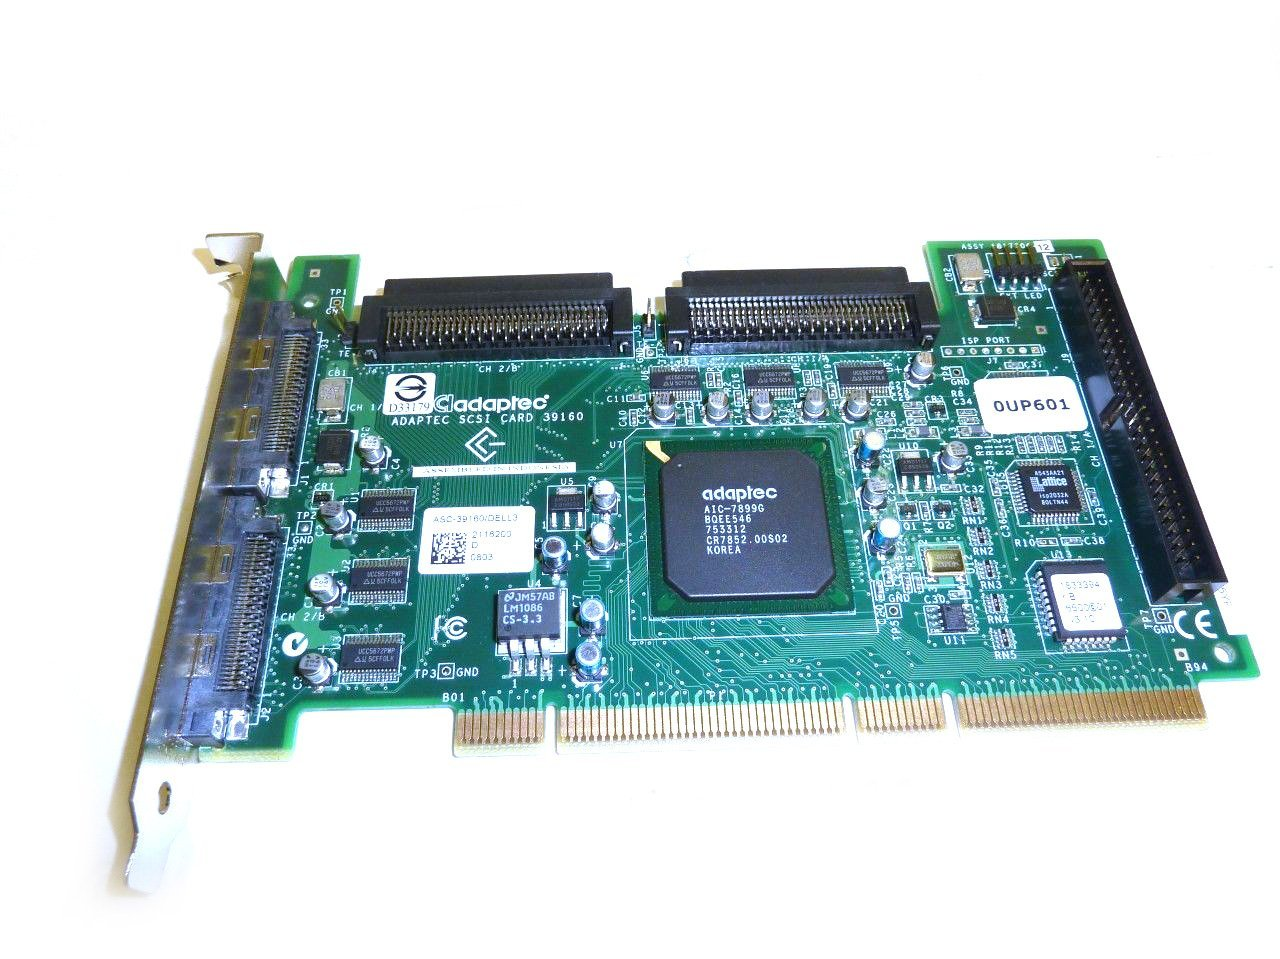 COMPAQ ADAPTEC SCSI CARD 39160 TREIBER WINDOWS 10